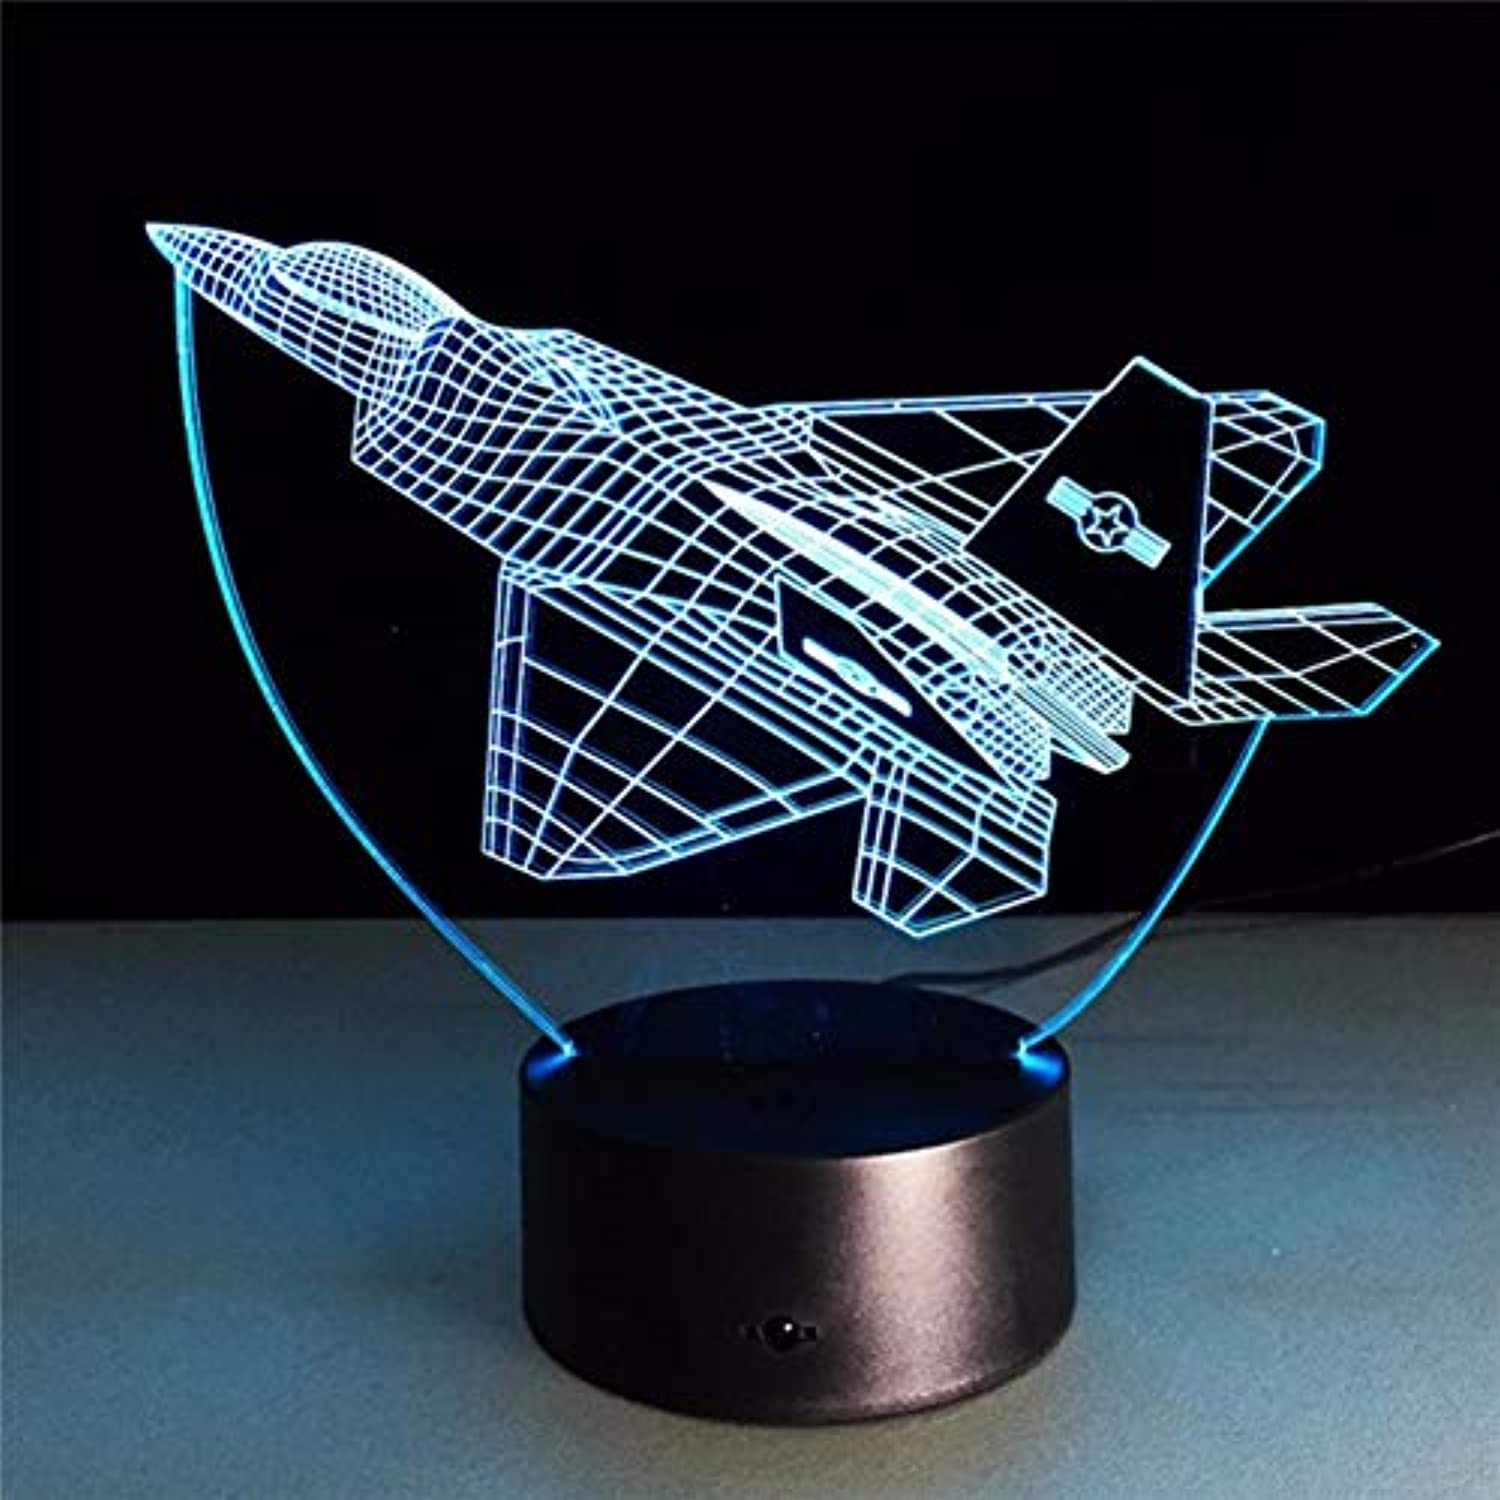 DZXGY Aircraft 3D Night Lights War Plane Fighter Table lamp Multi colors Military Jet Plane with USB Power Decor Gift